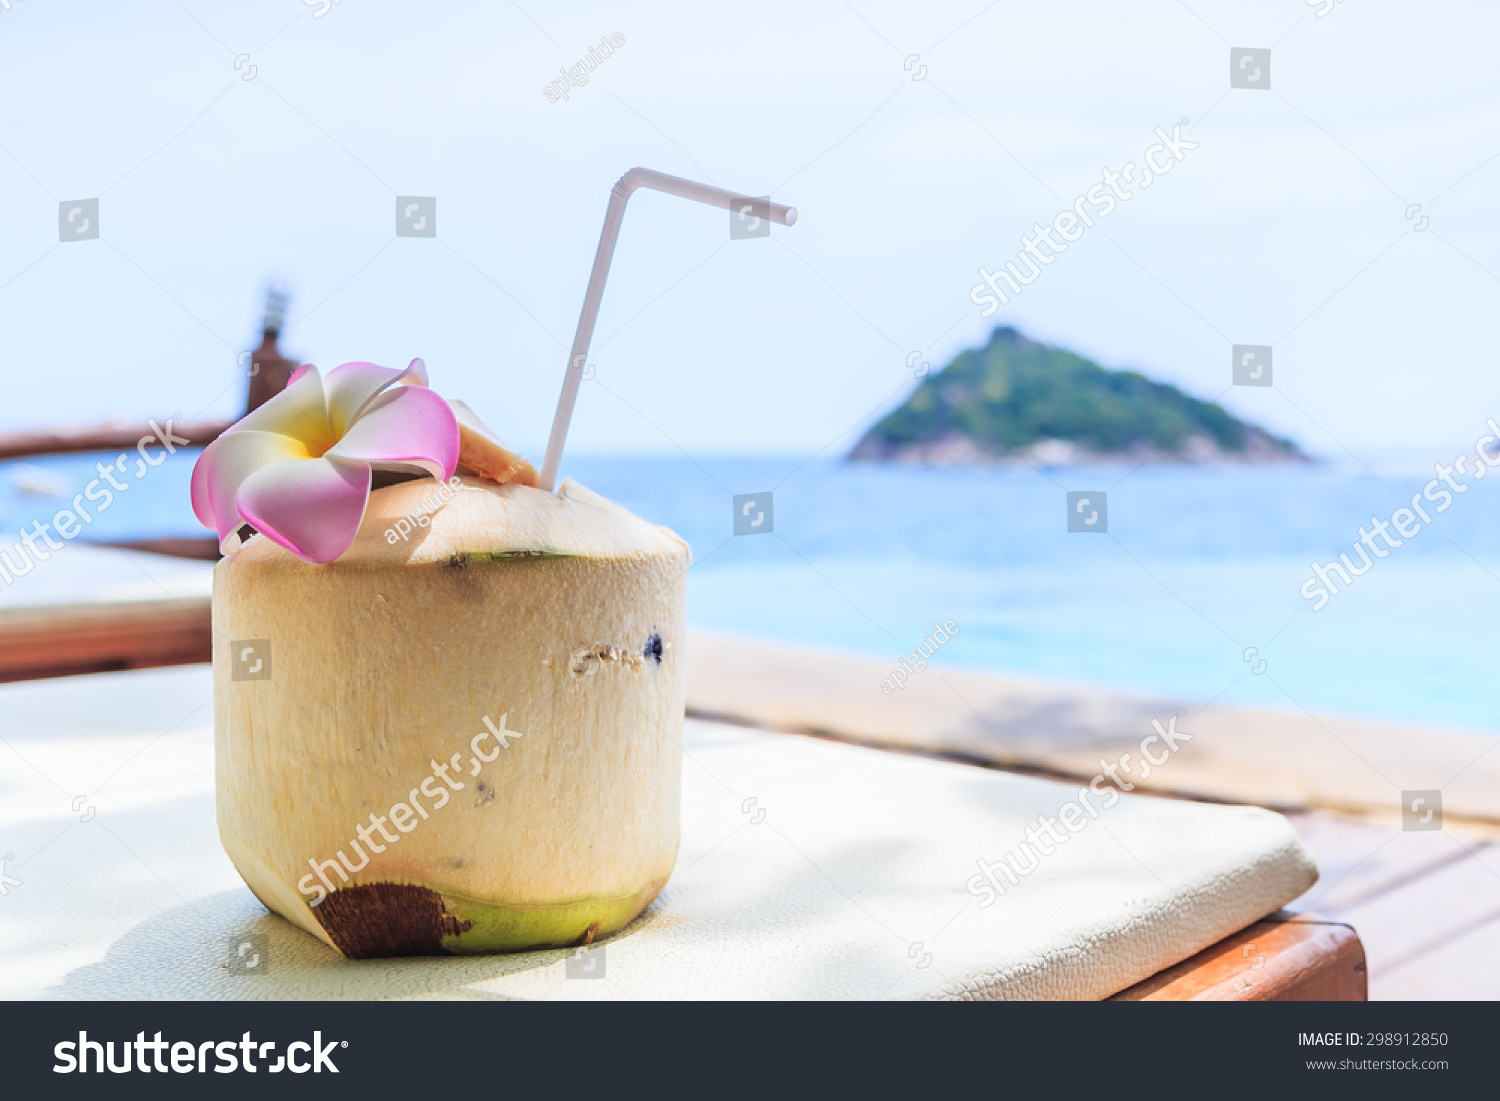 Coconut water drink swimming pool stock photo 298912850 shutterstock How to make swimming pool water drinkable